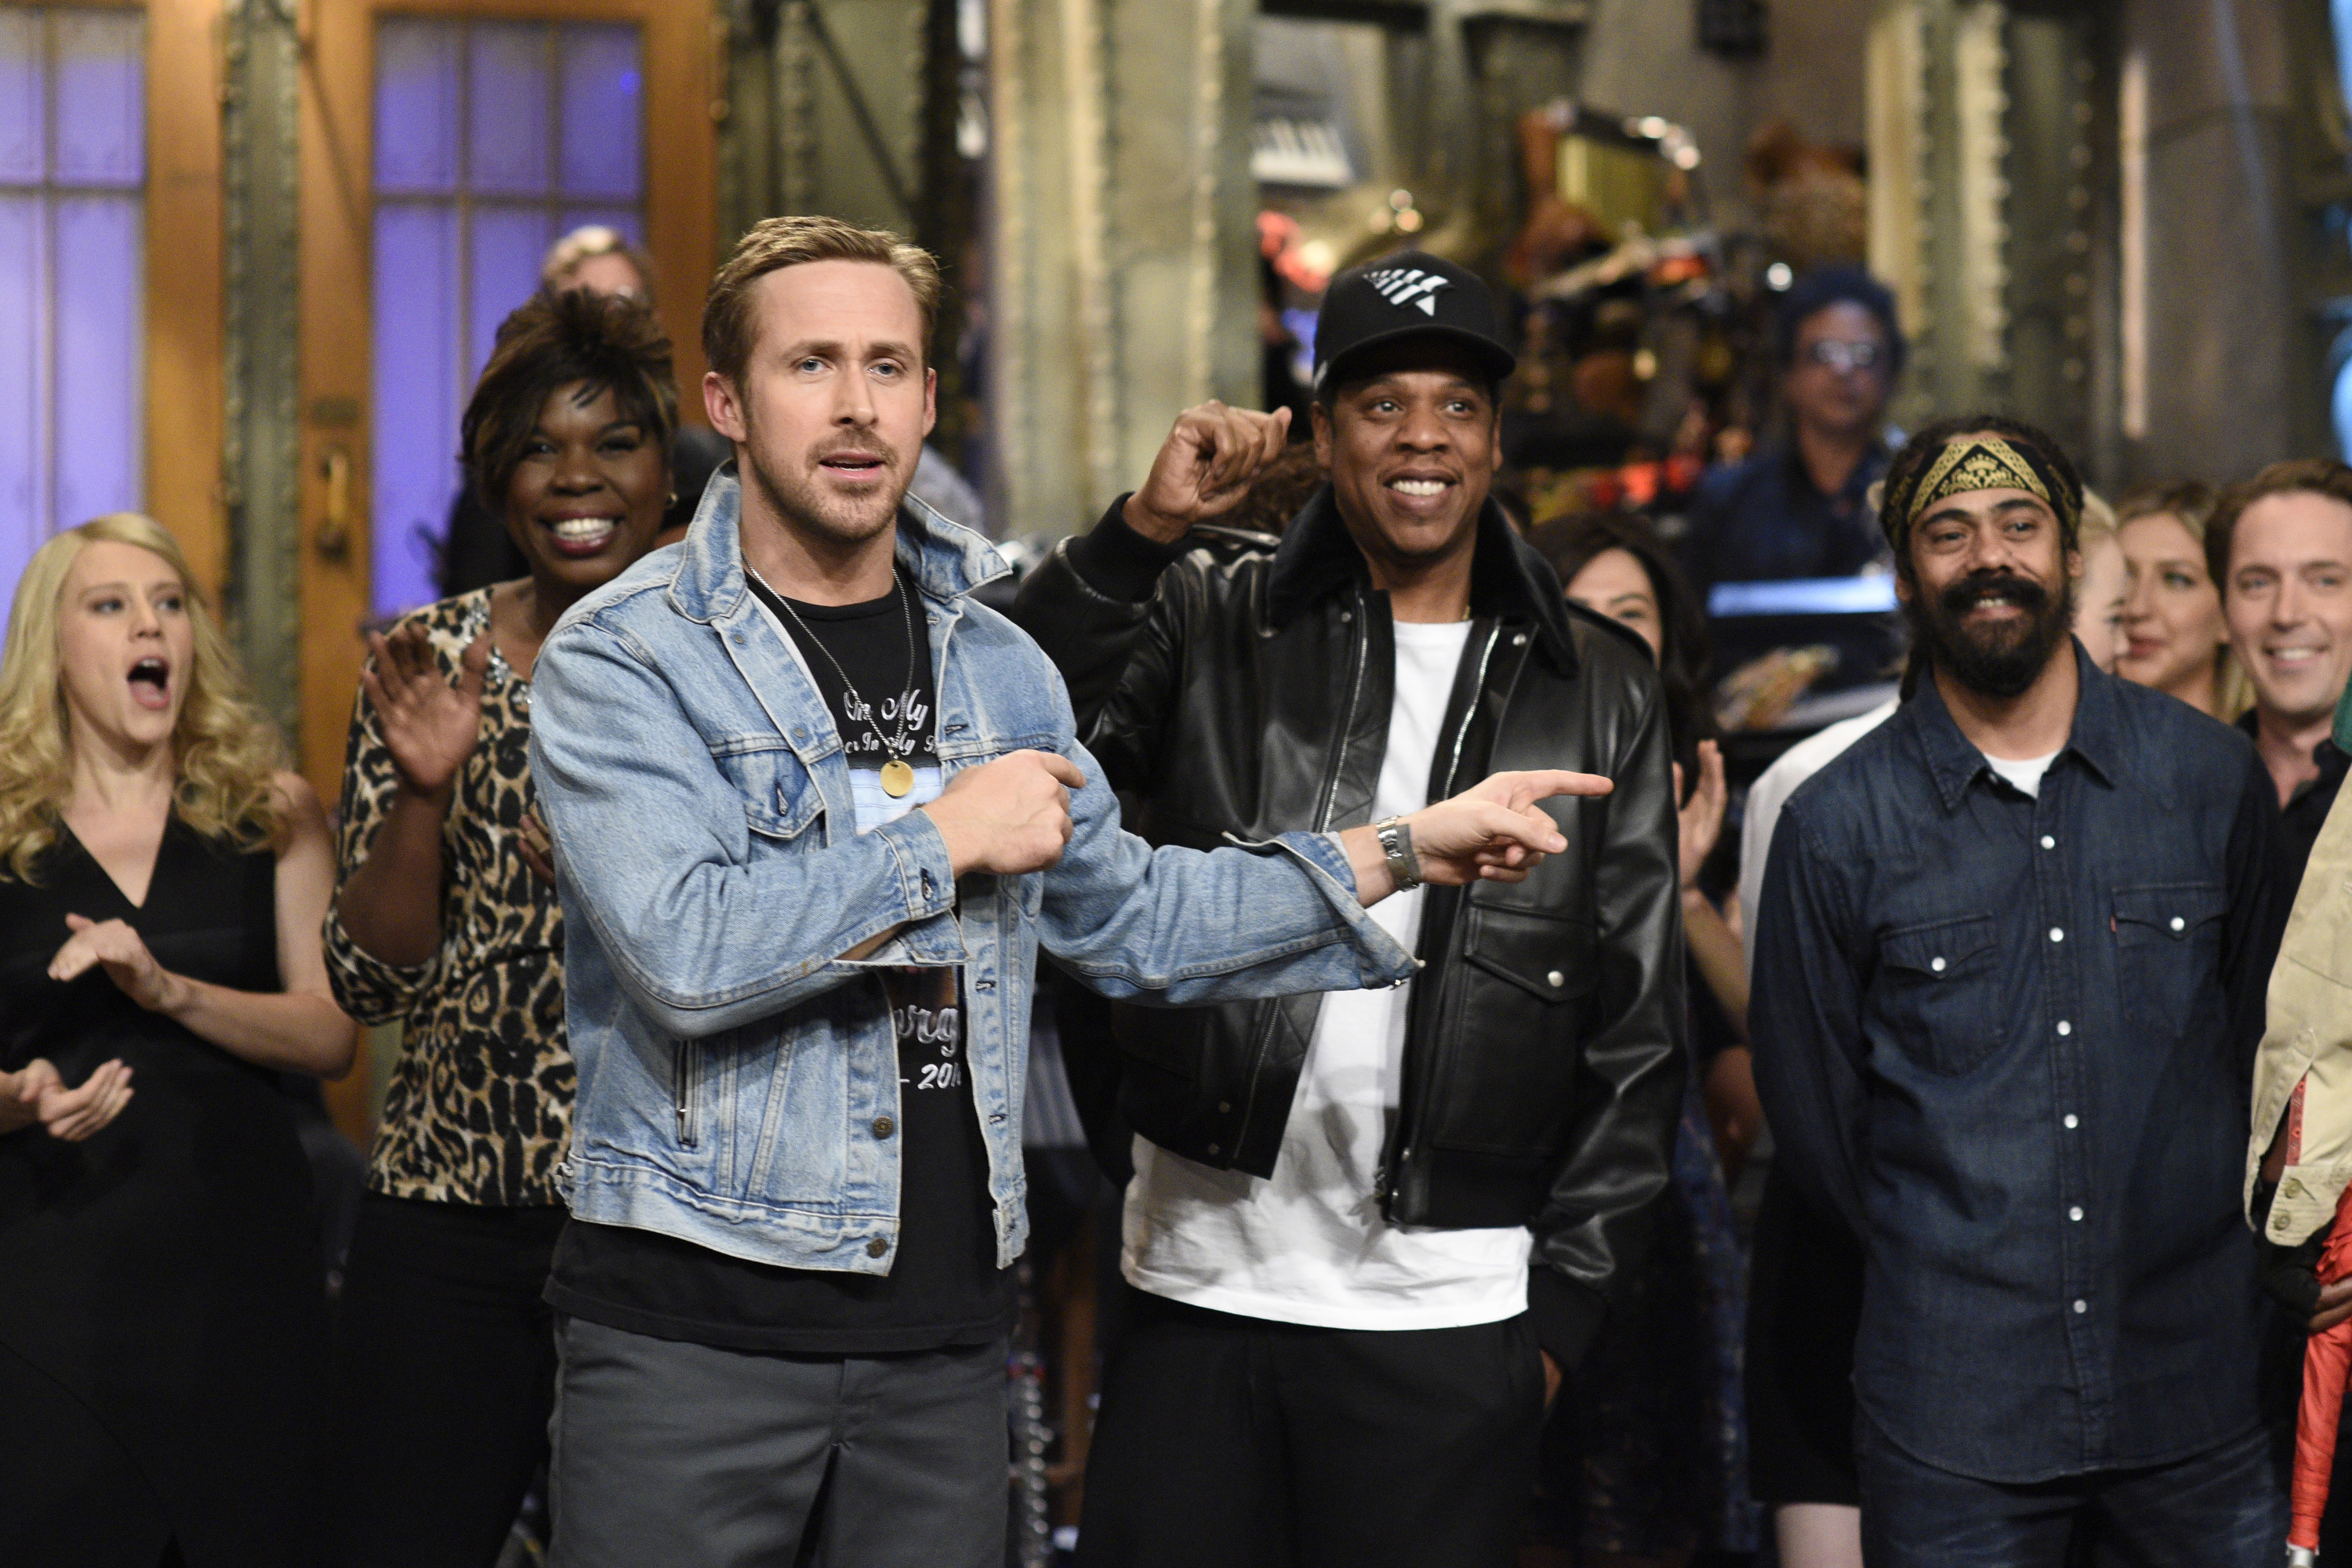 Ryan Gosling, Jay Z and cast on  Saturday Night Live  on Sept. 30, 2017